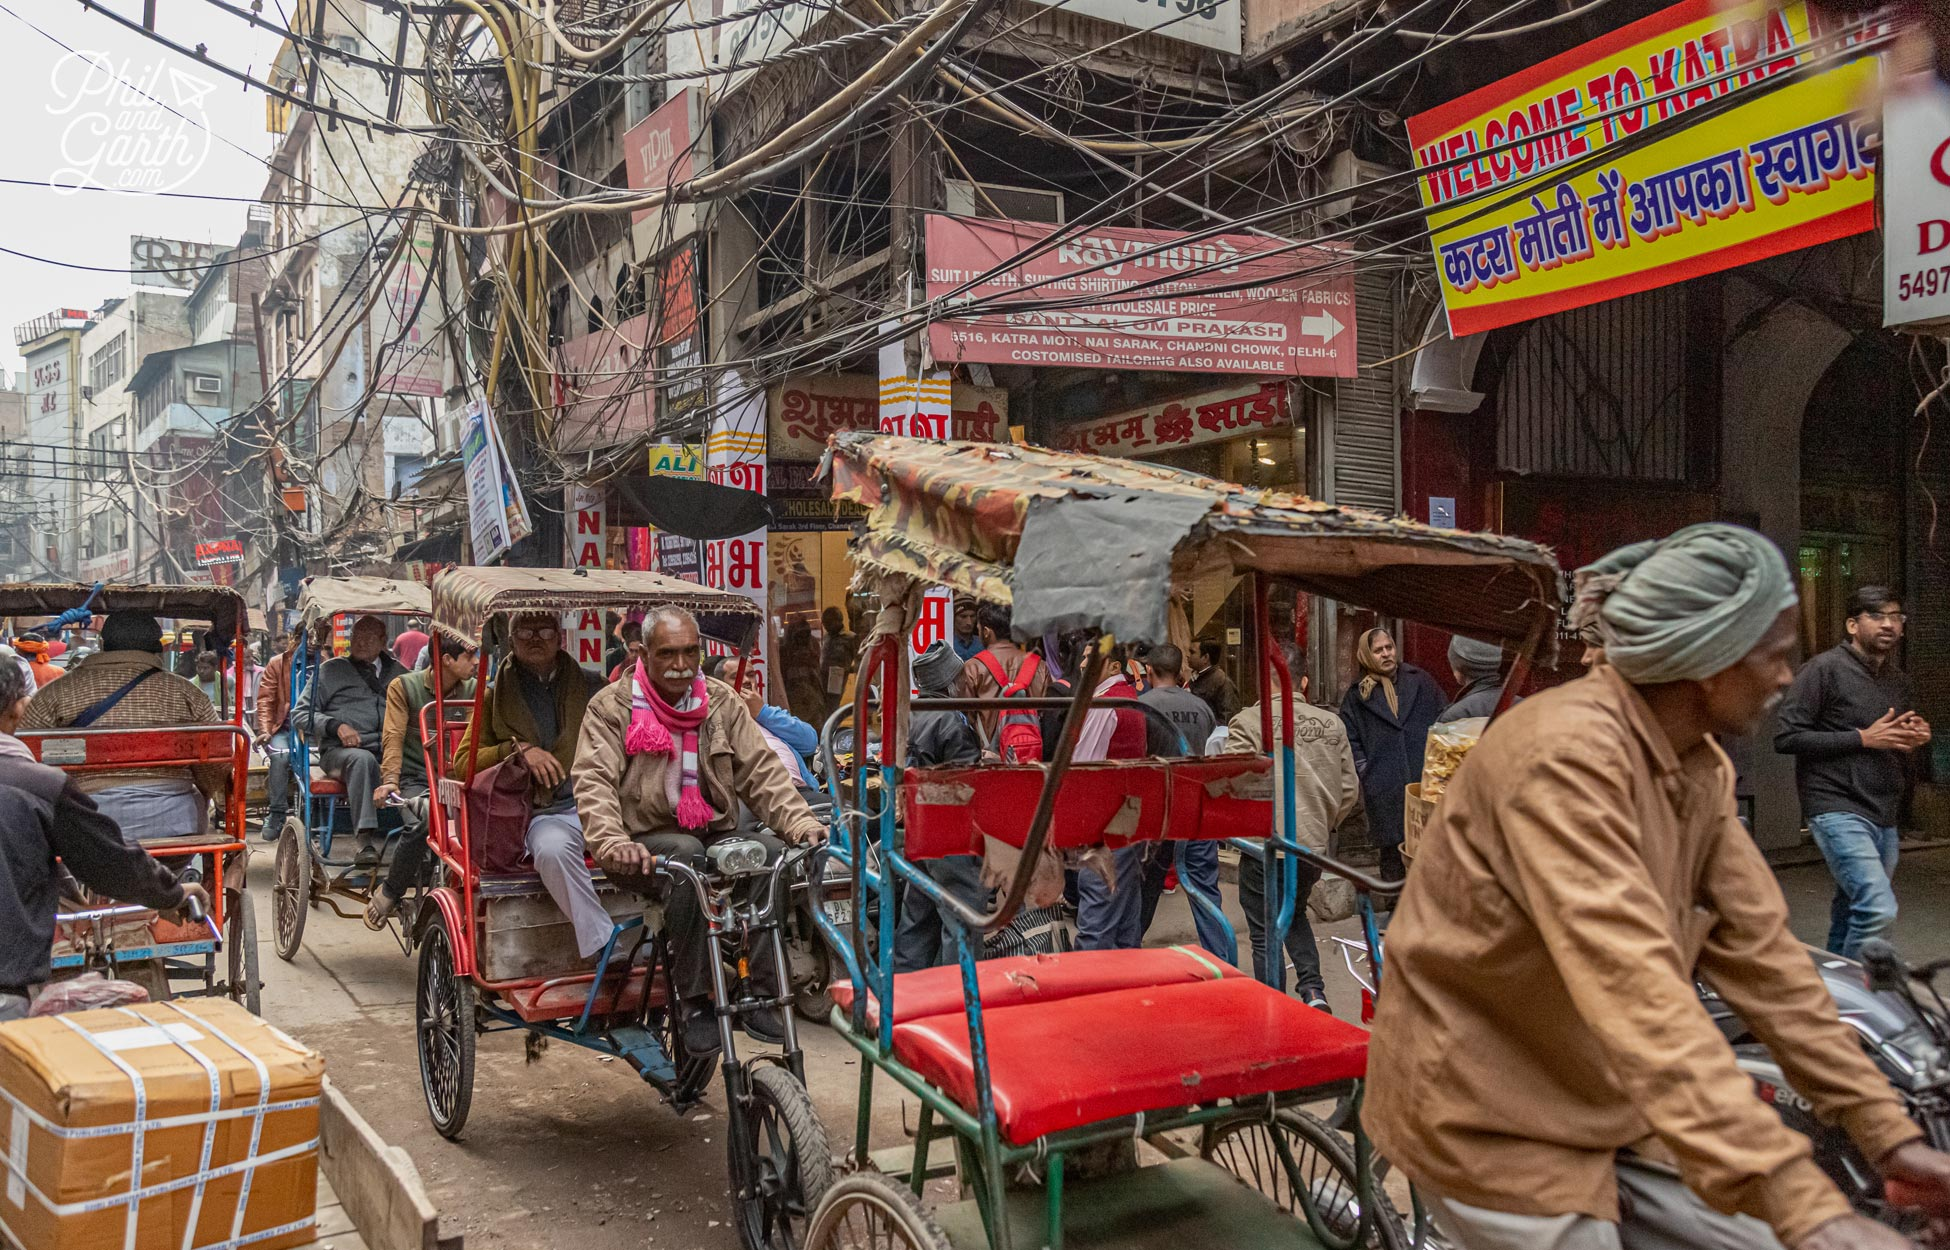 The Chandi Chowk Market really has to be seen to be believed